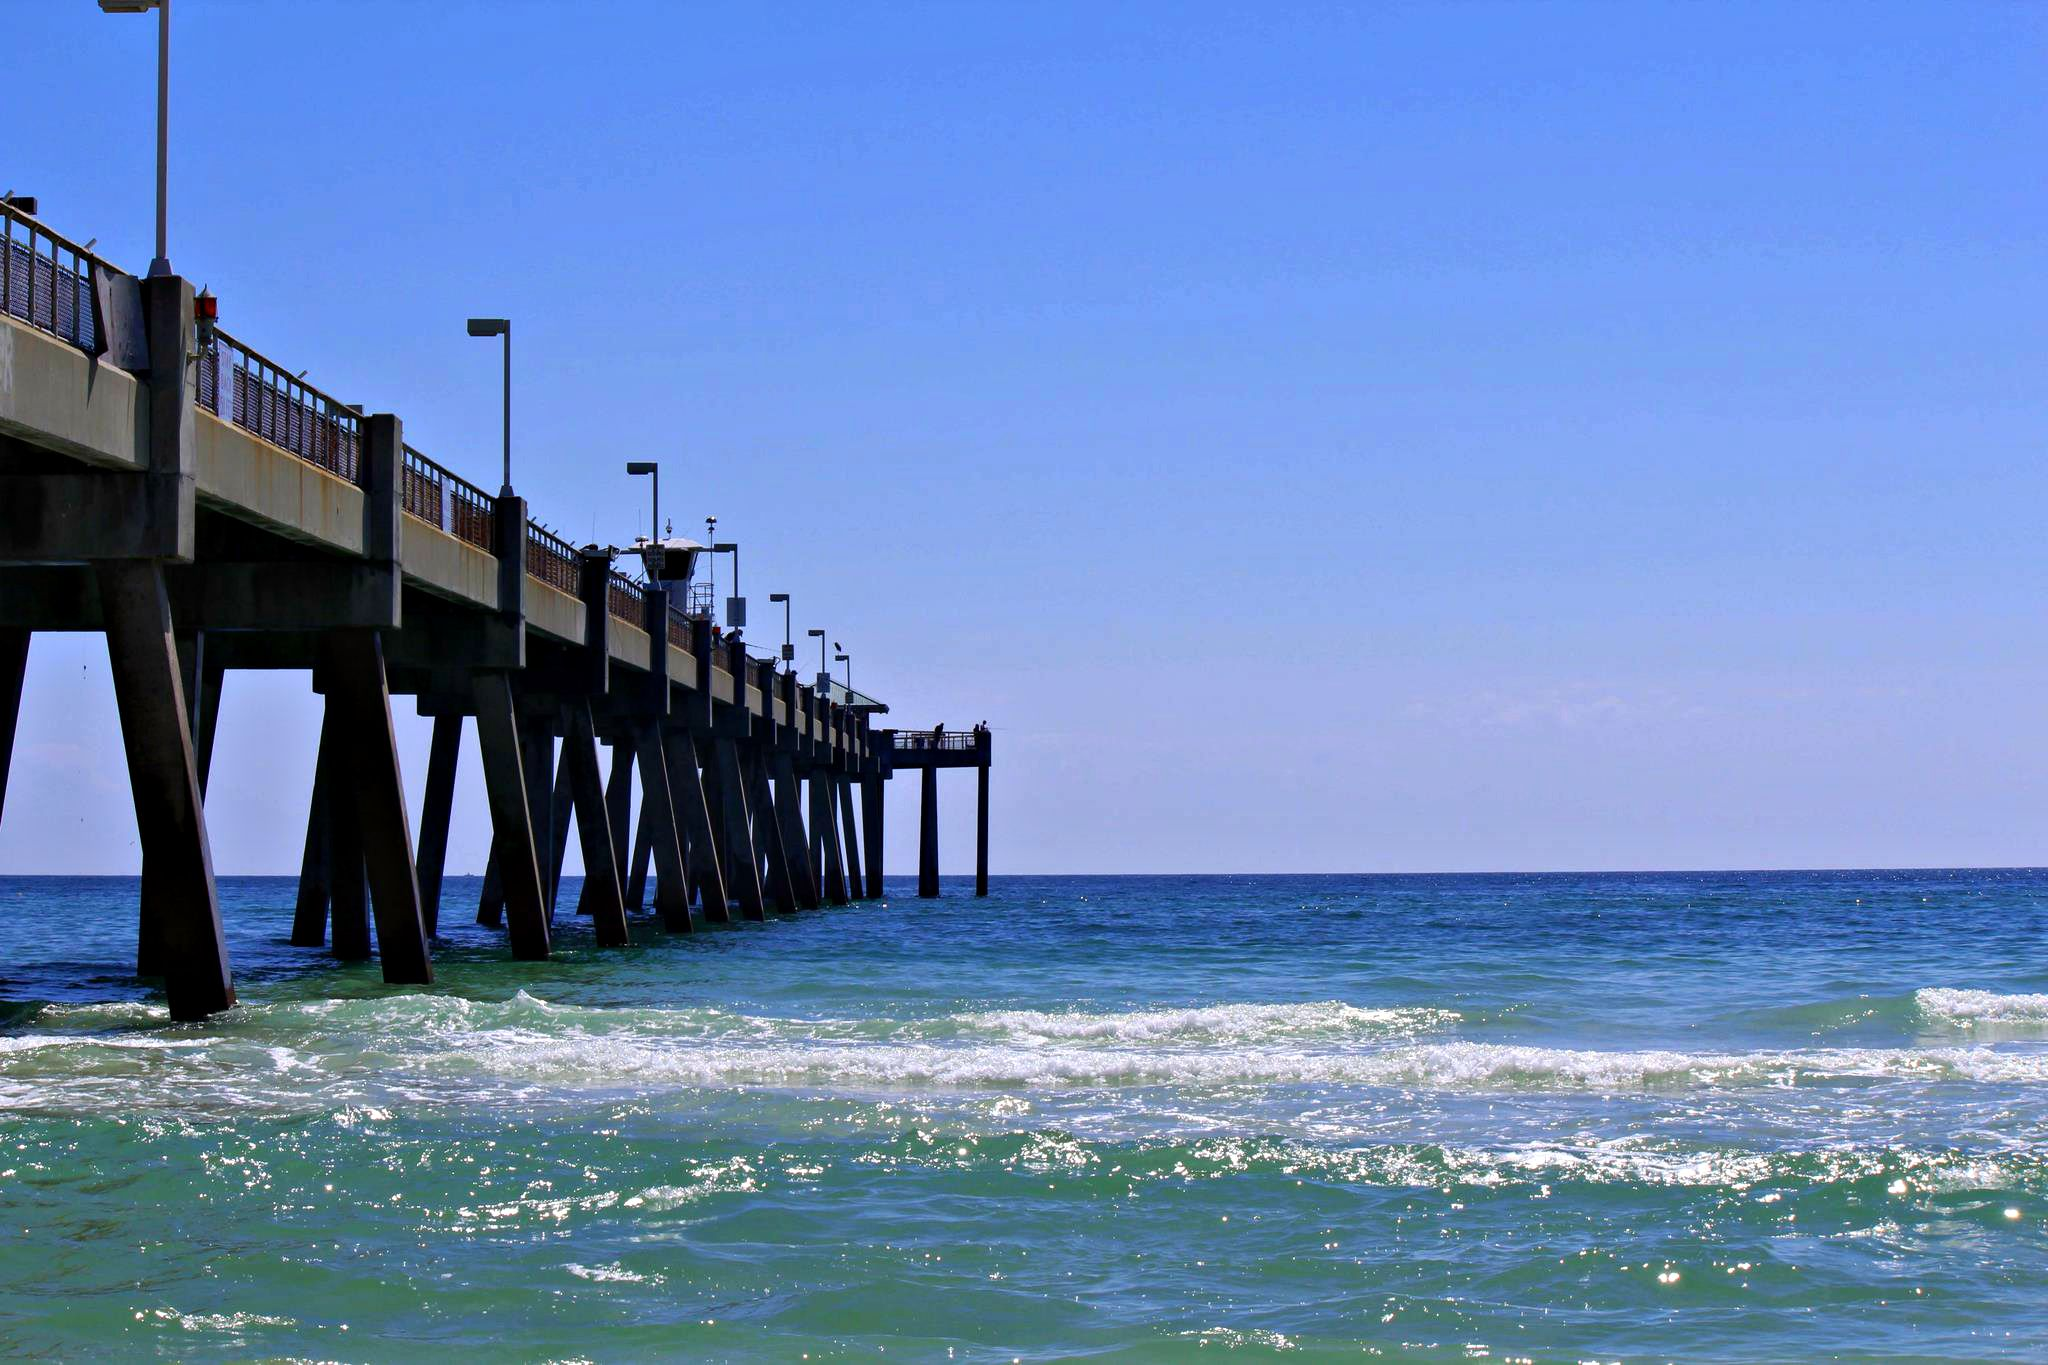 Gulf waves lapping against the Okaloosa Island Fishing Pier in Fort Walton Beach